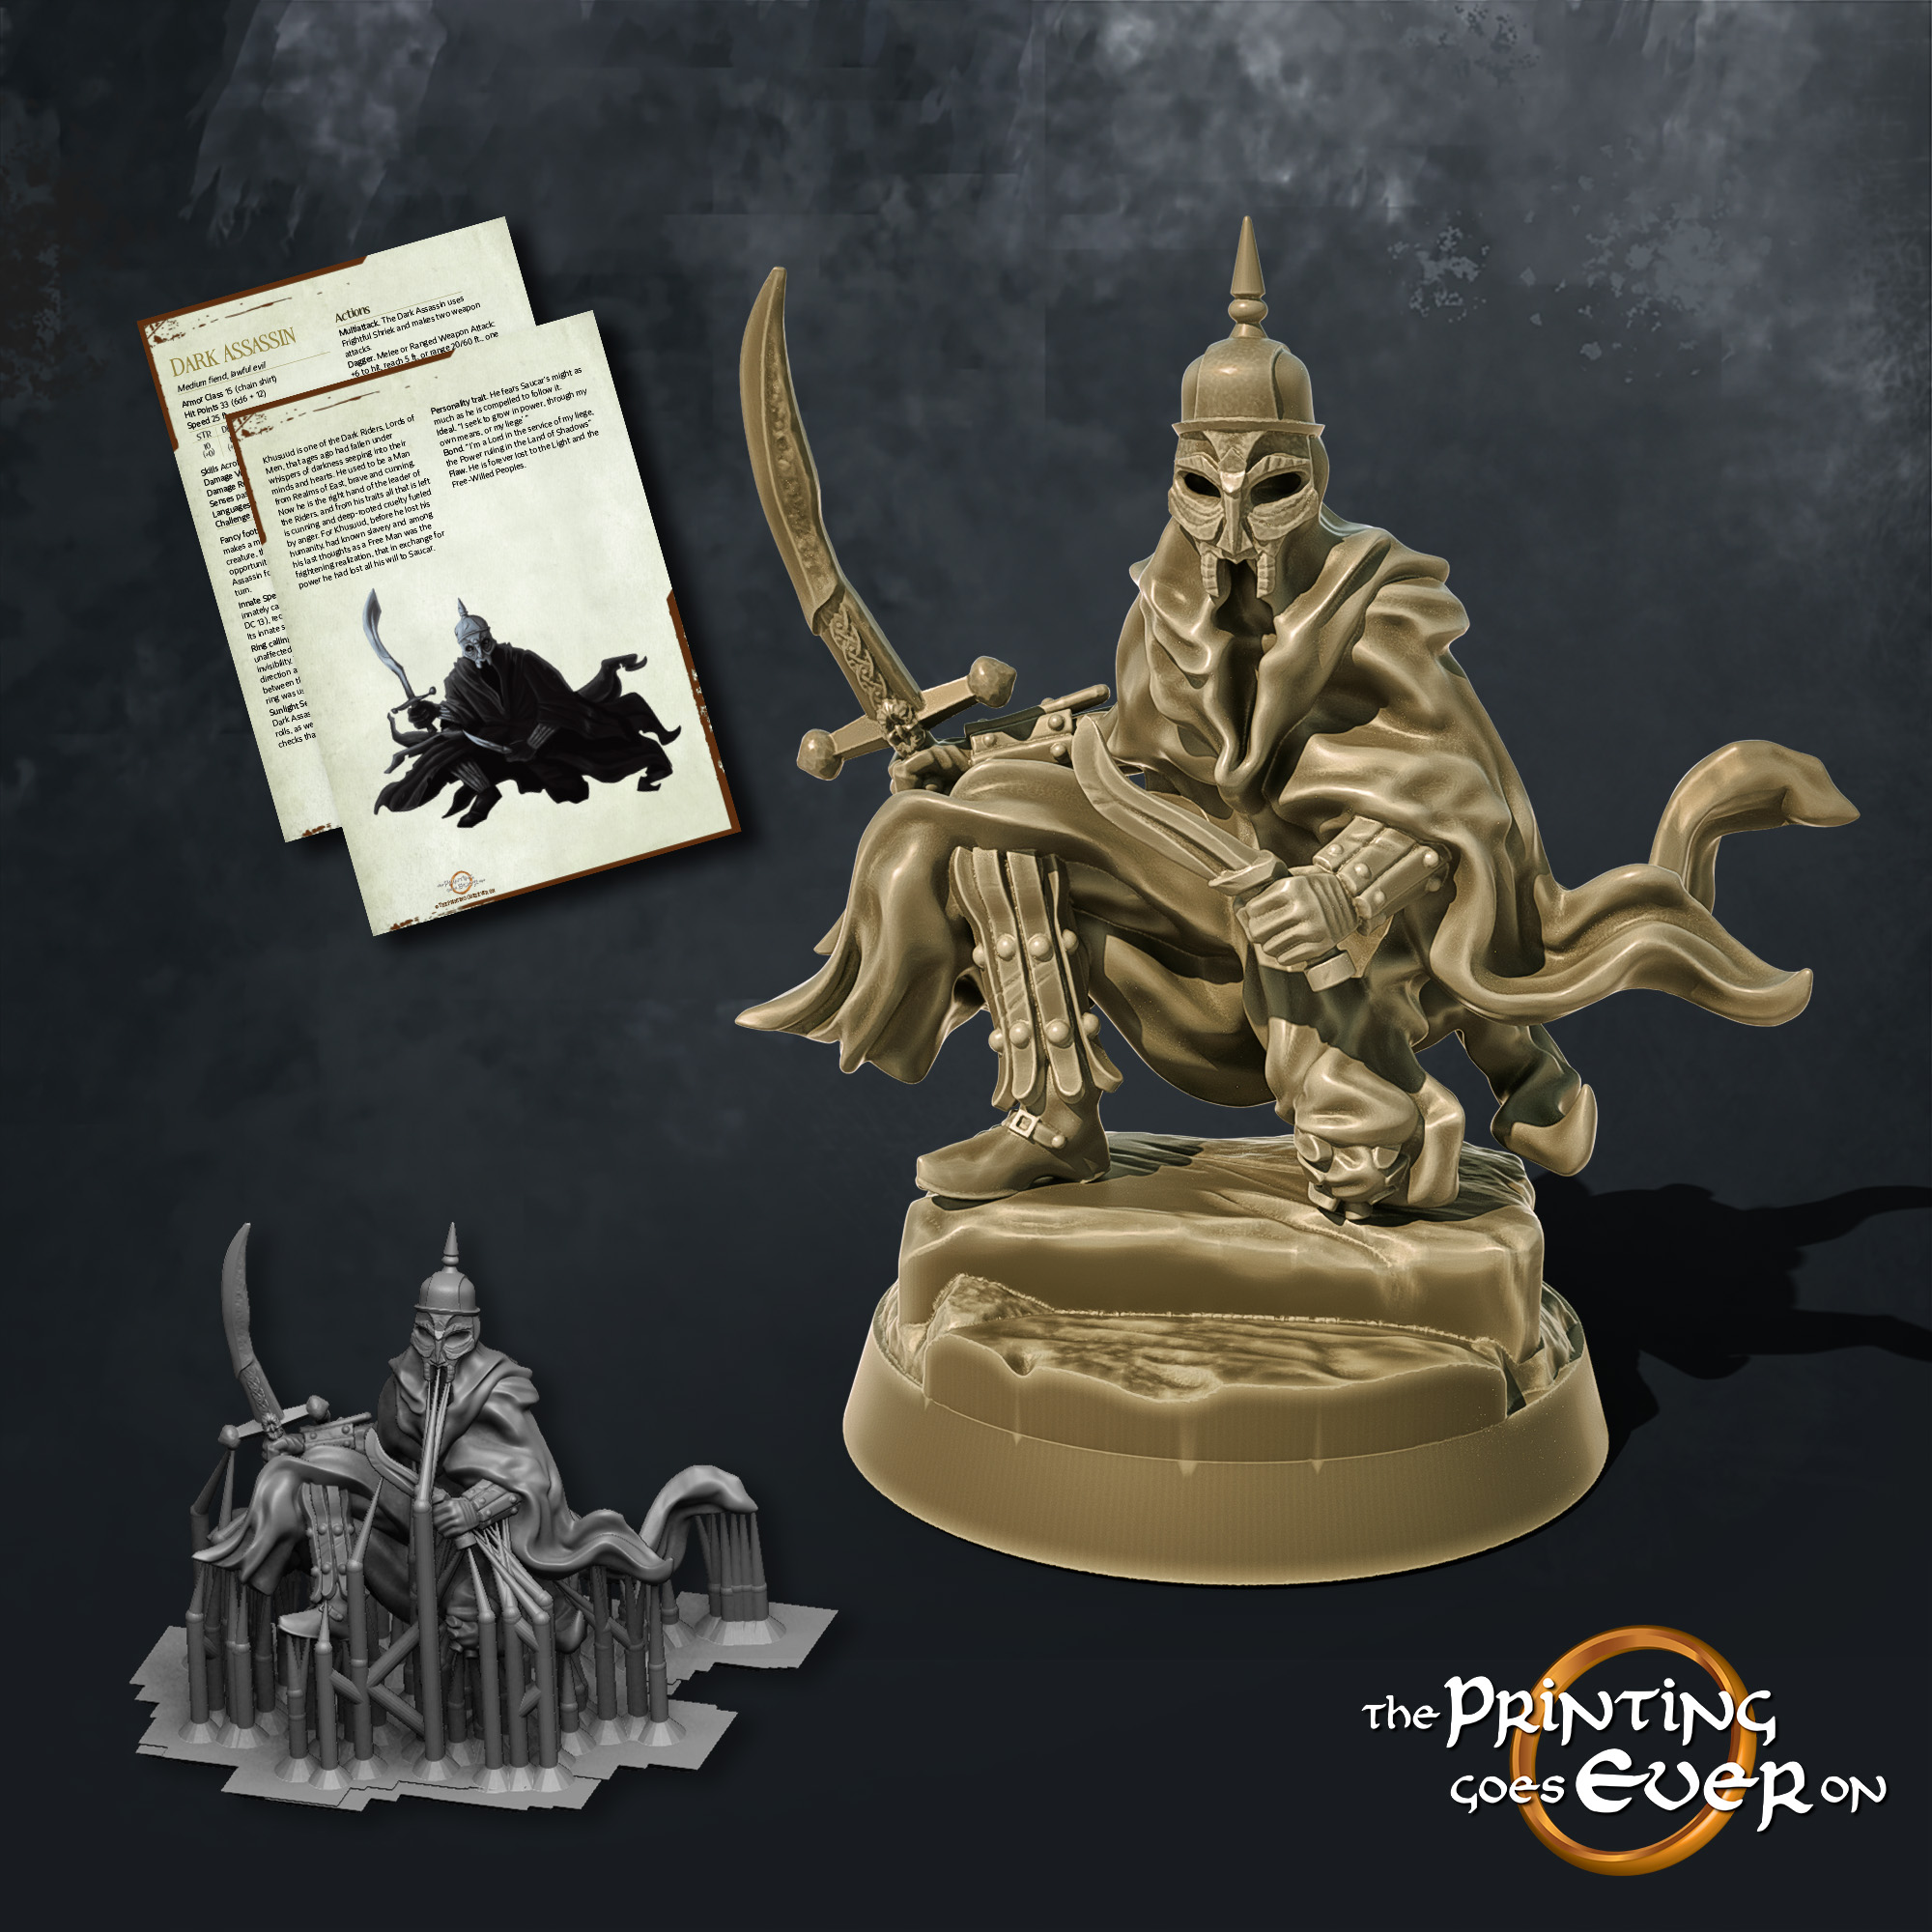 dark assassin wraith with sabre the printing goes ever on october 2020 patreon pack miniature